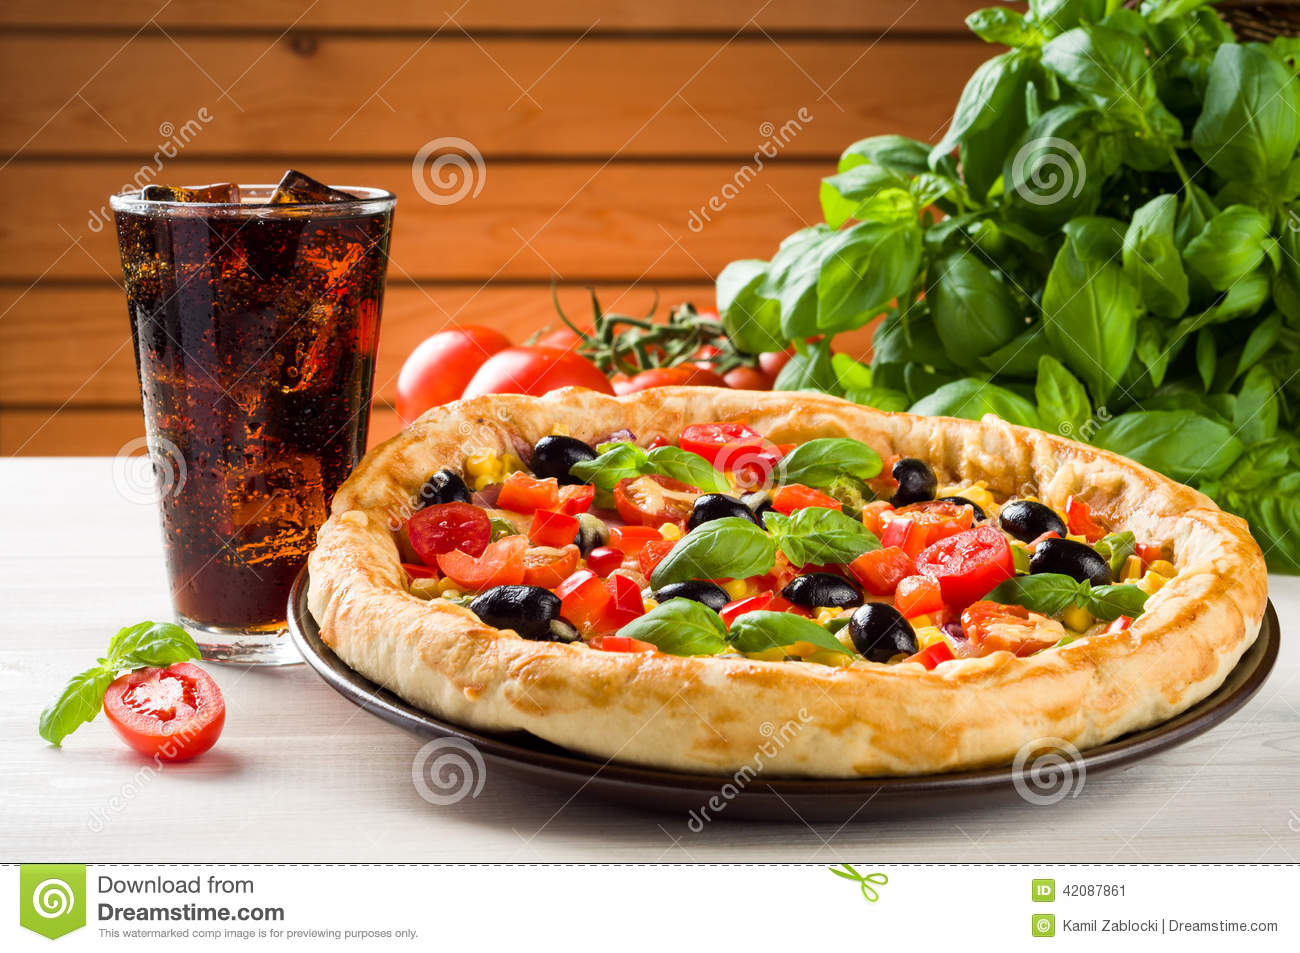 Glass Wallpaper Hd Pizza And Coke Stock Image Image Of Brown Dough